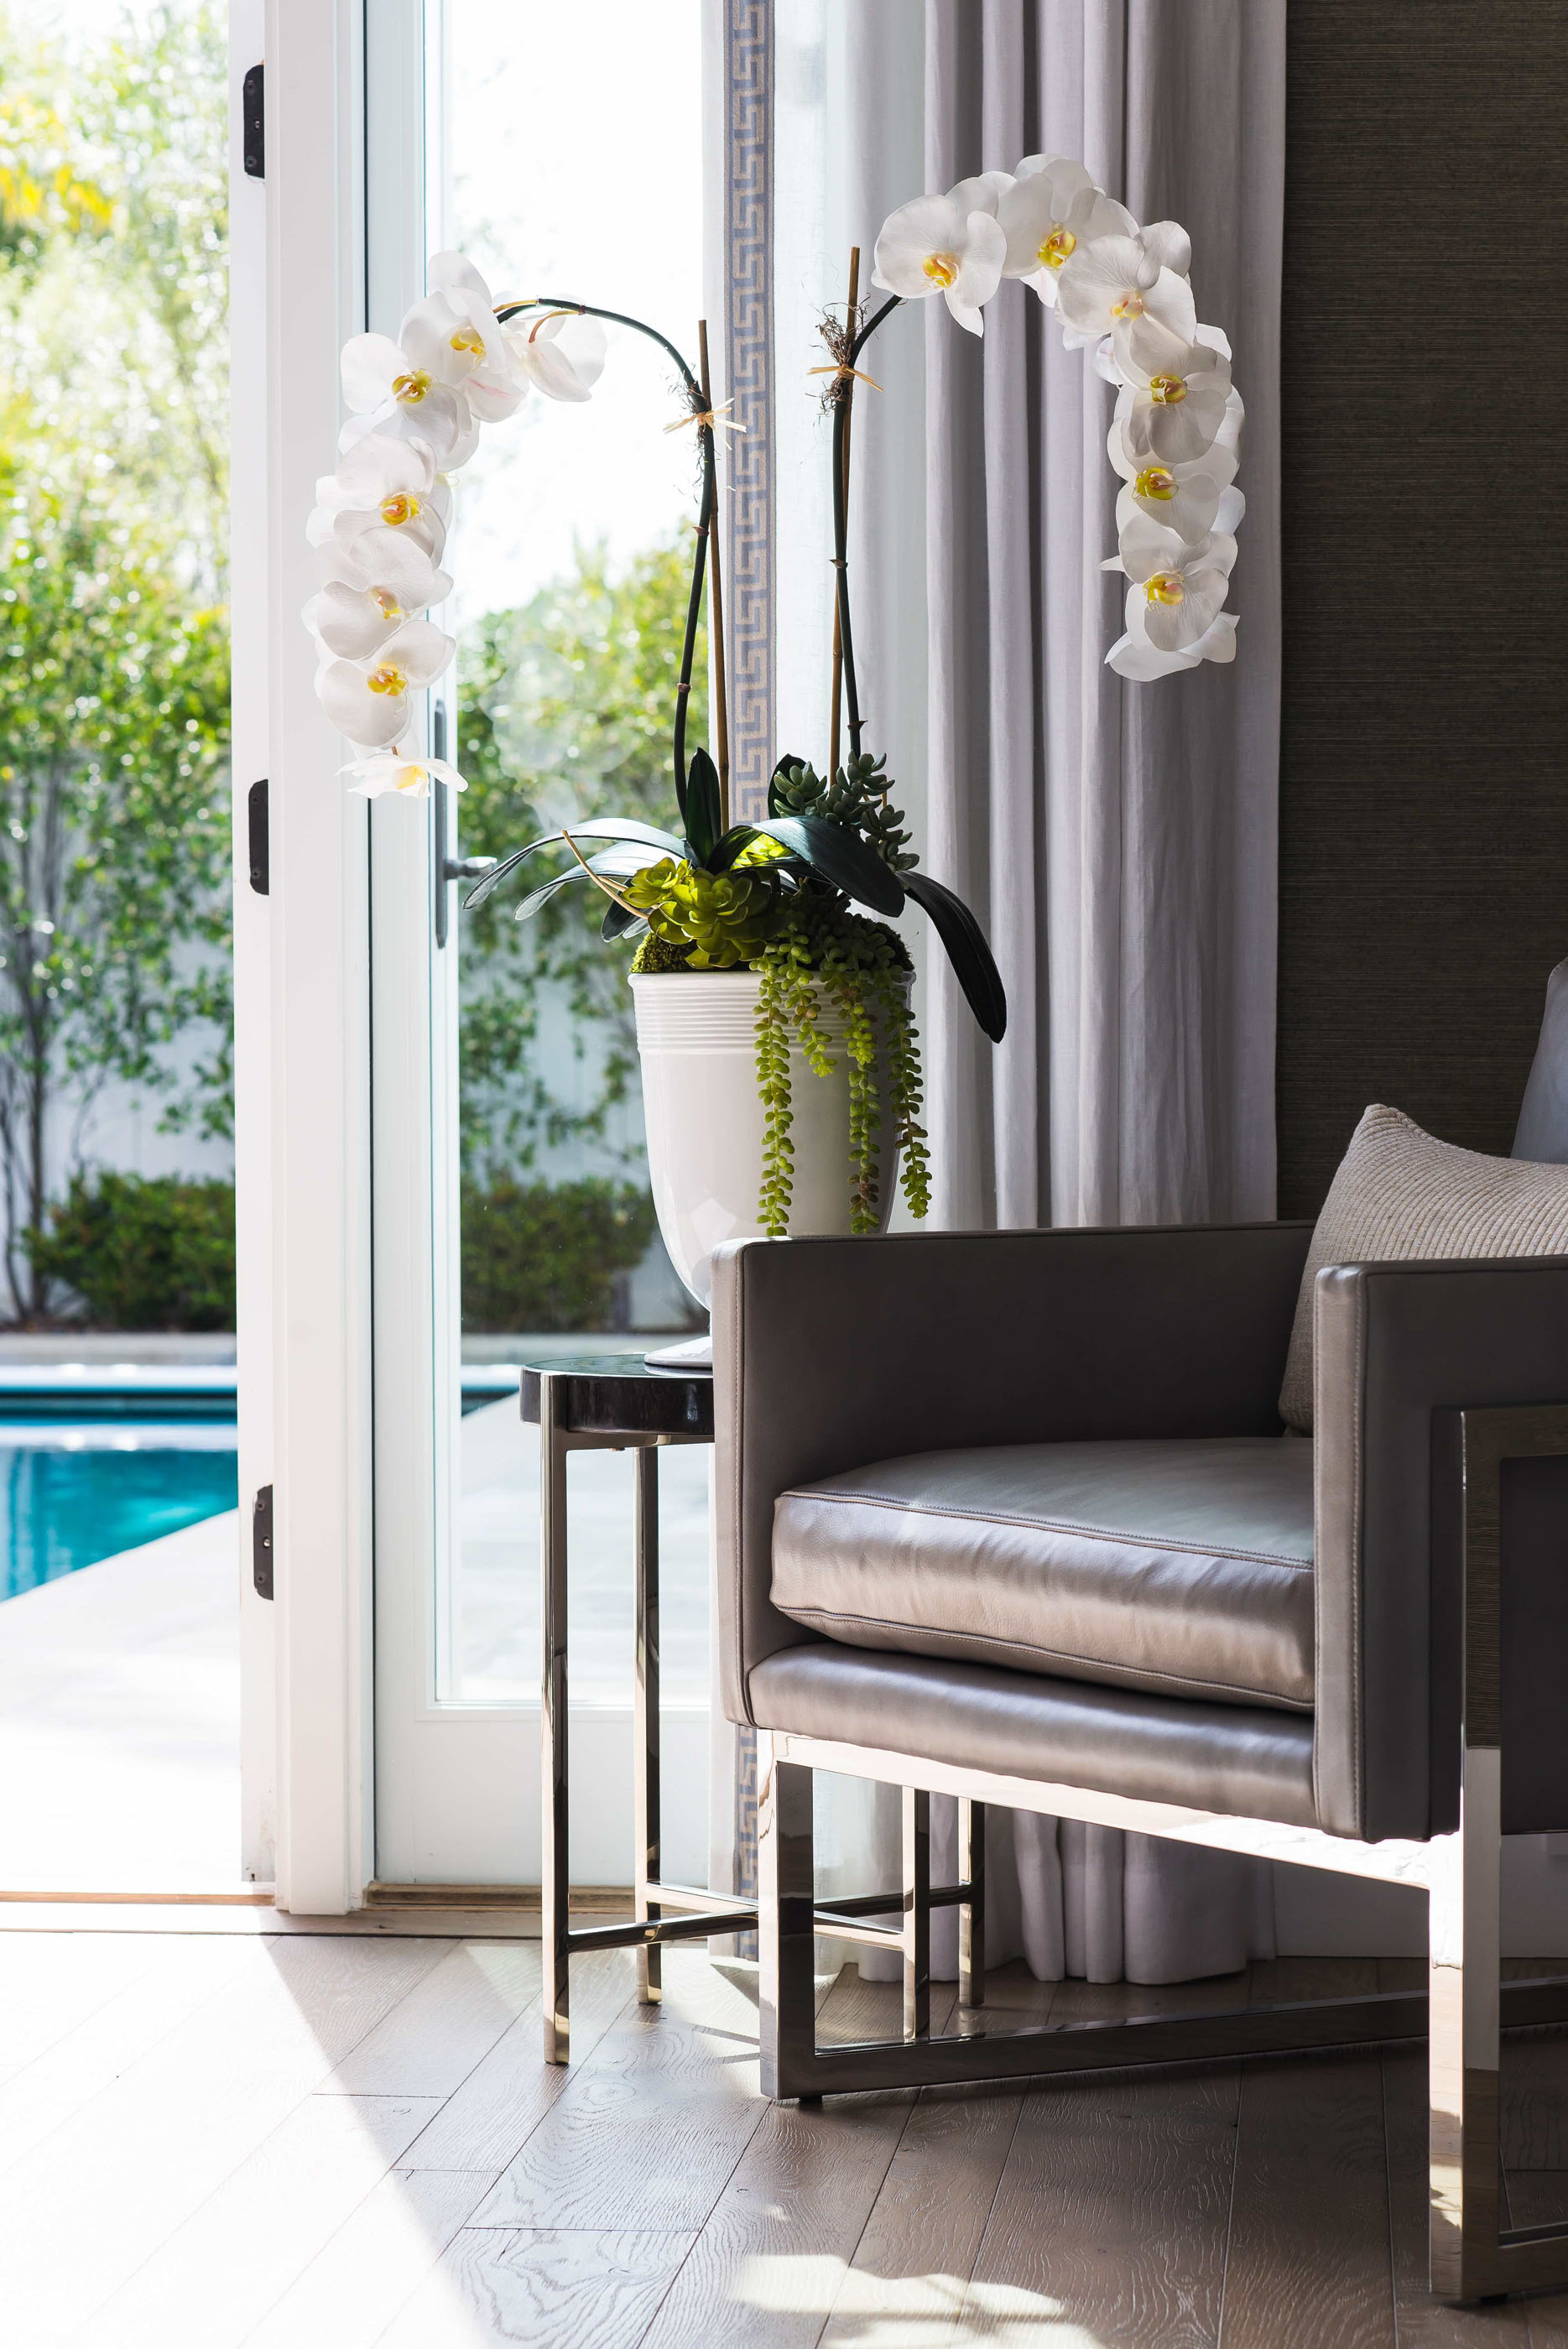 Bedroom Chair Newport Beach Melissa Morgan Design 1